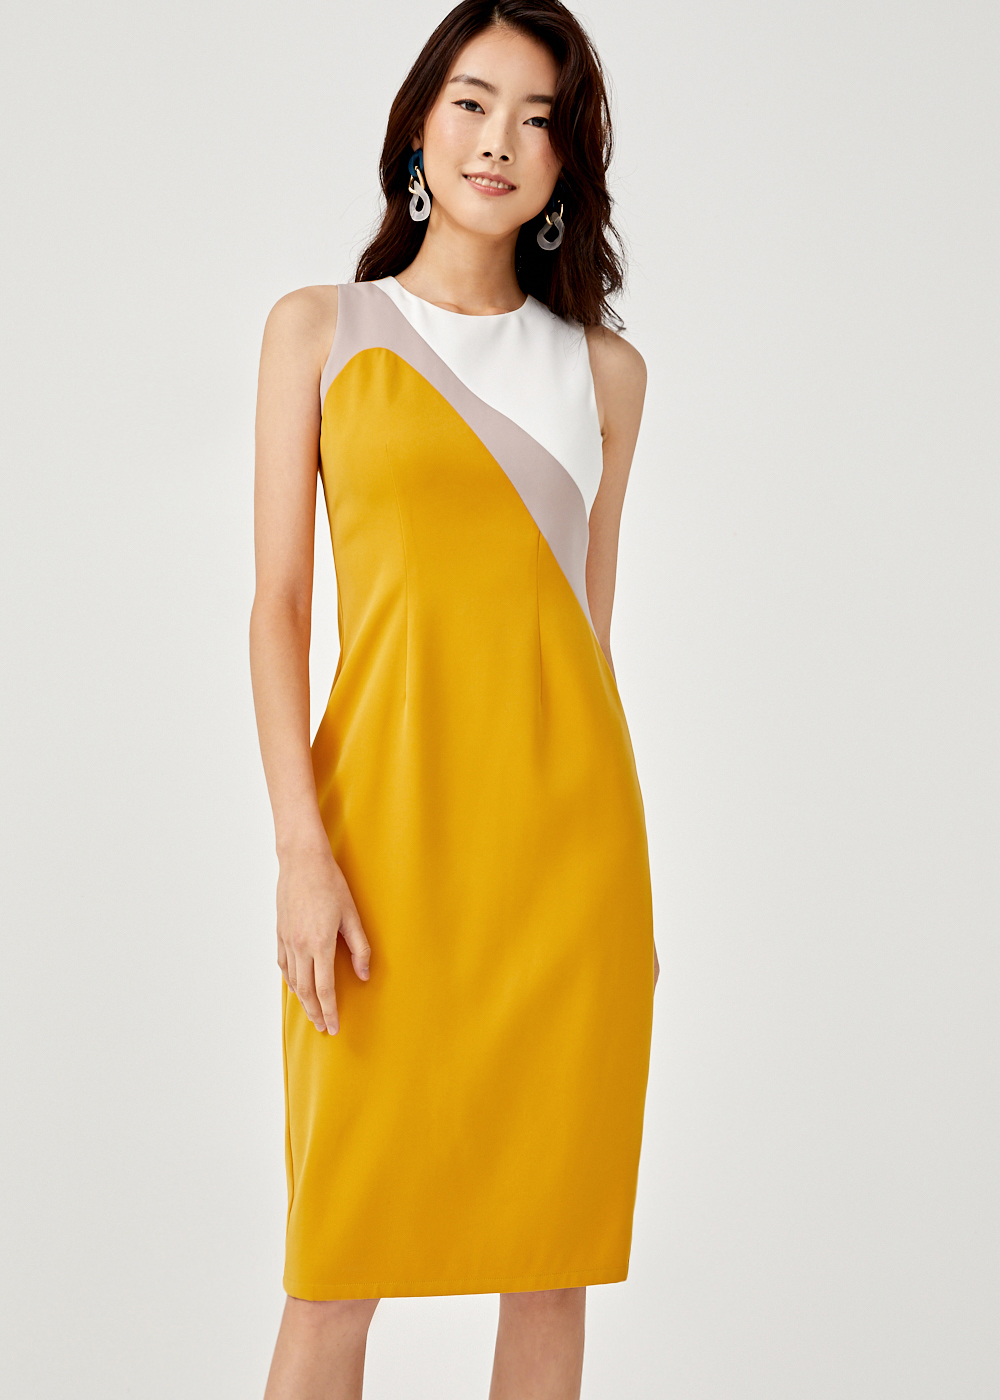 Camdynne Colour Block Pencil Dress